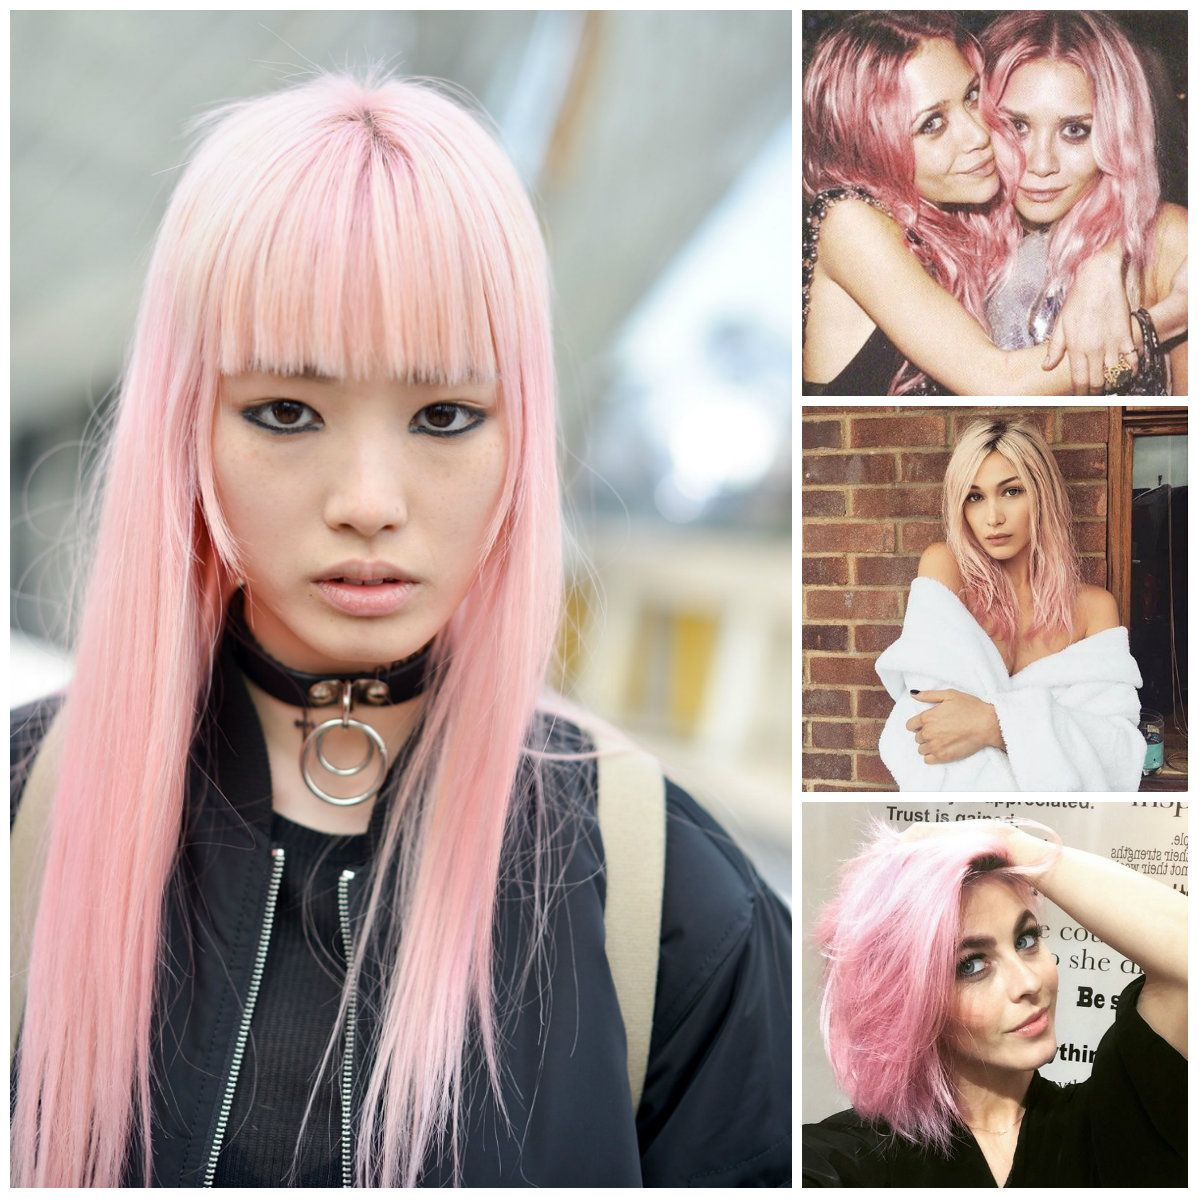 The New Platinum Hair Is Out There Waiting For Us Pink Officially Prettiest Color Its Combination Of Blonde And